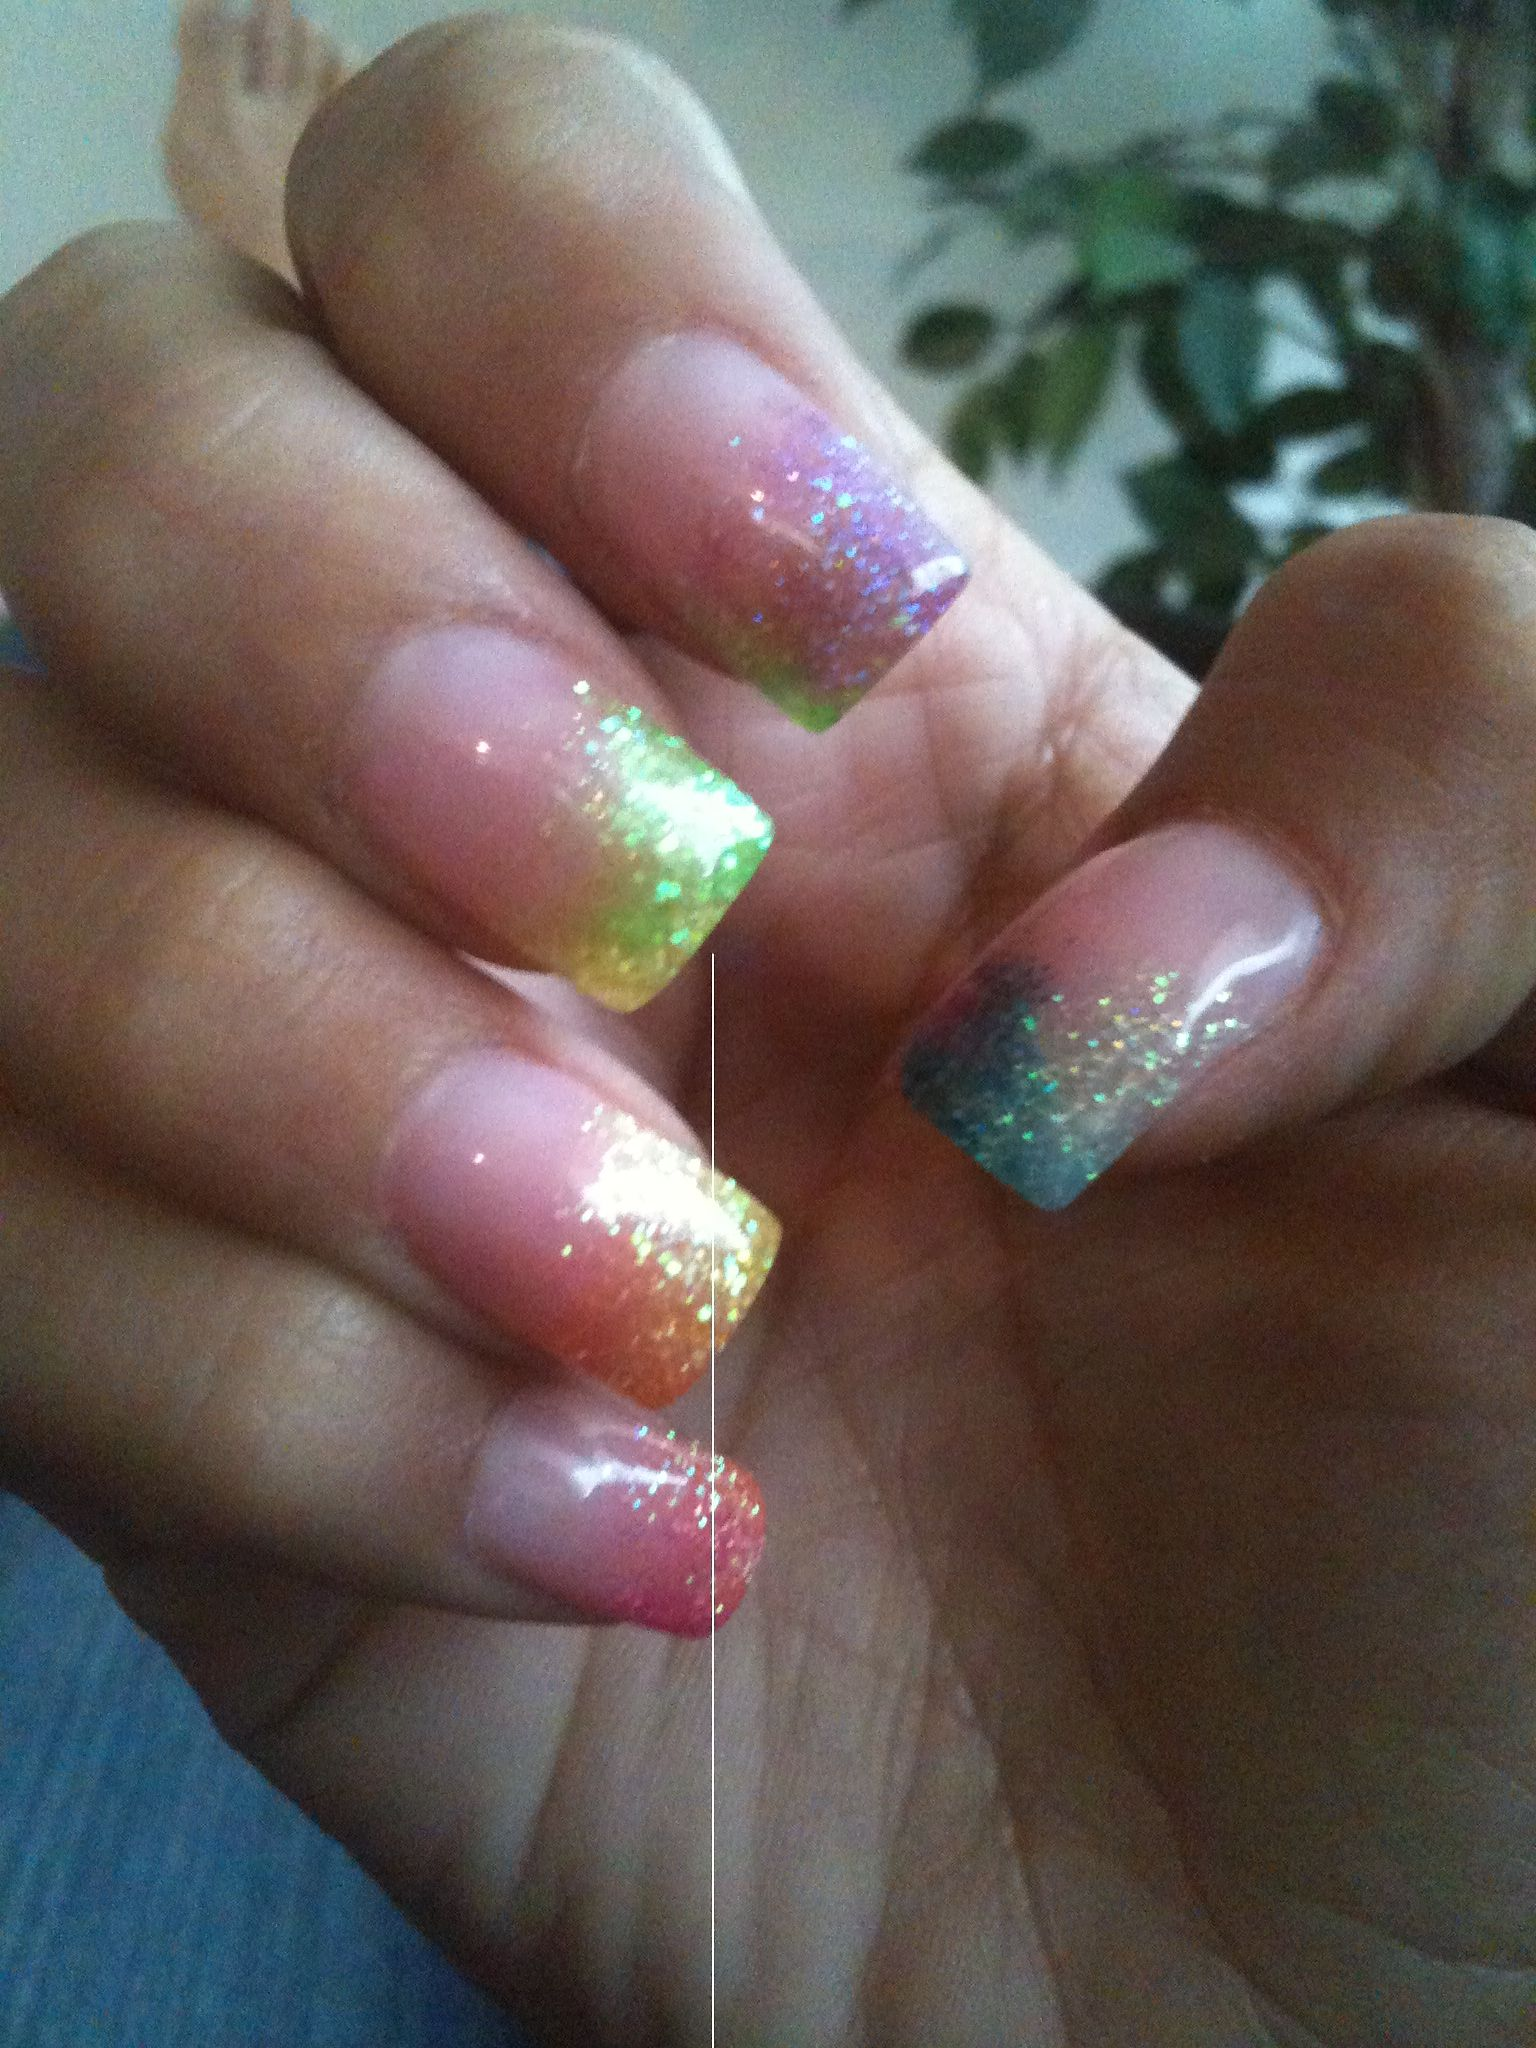 Color fade nails | nailed it | Pinterest | Faded nails and Makeup